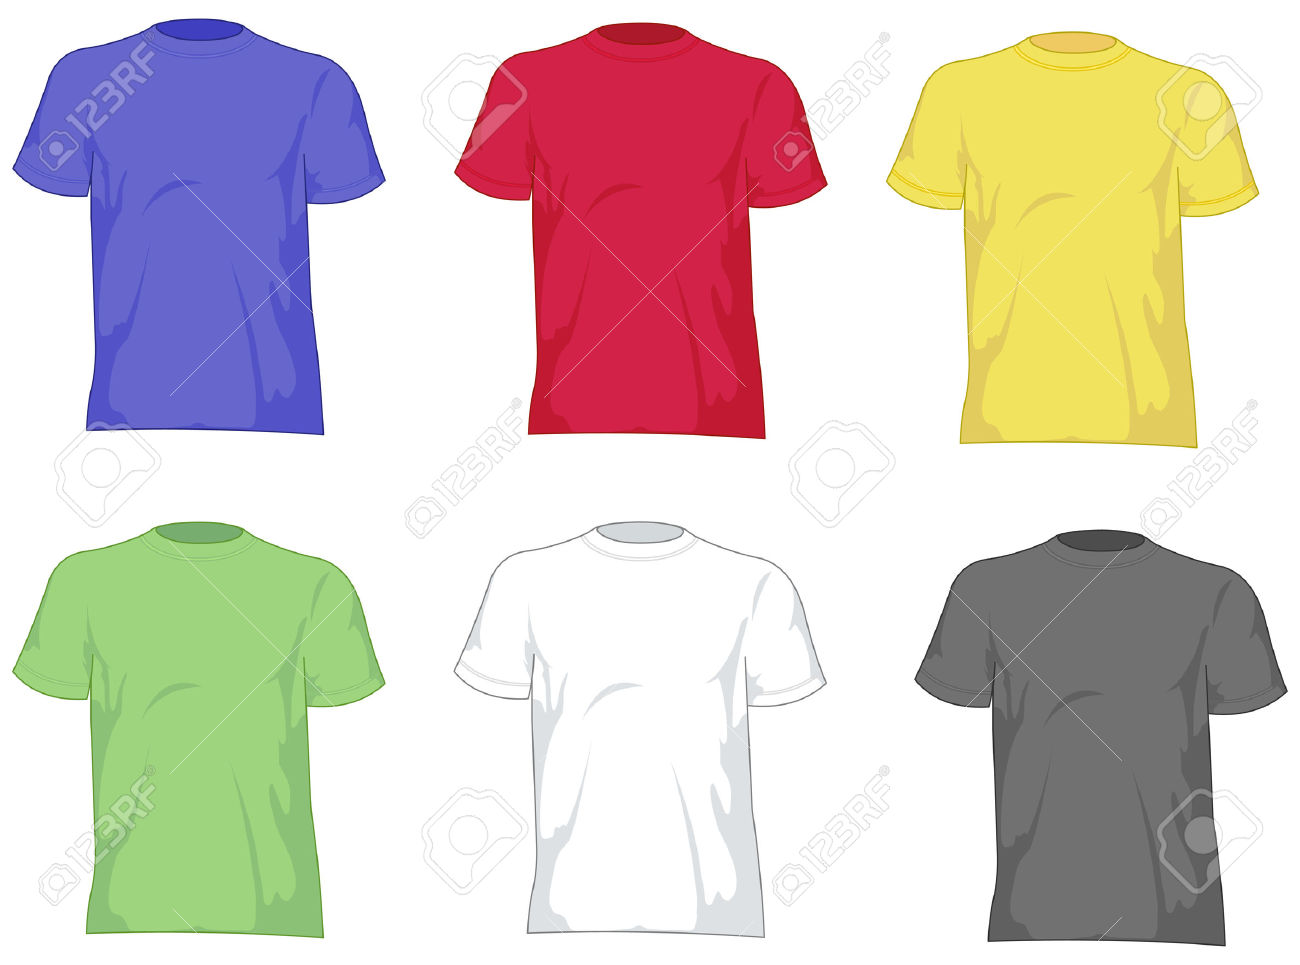 Set clipart clipart panda free clipart images for Vector art for t shirts